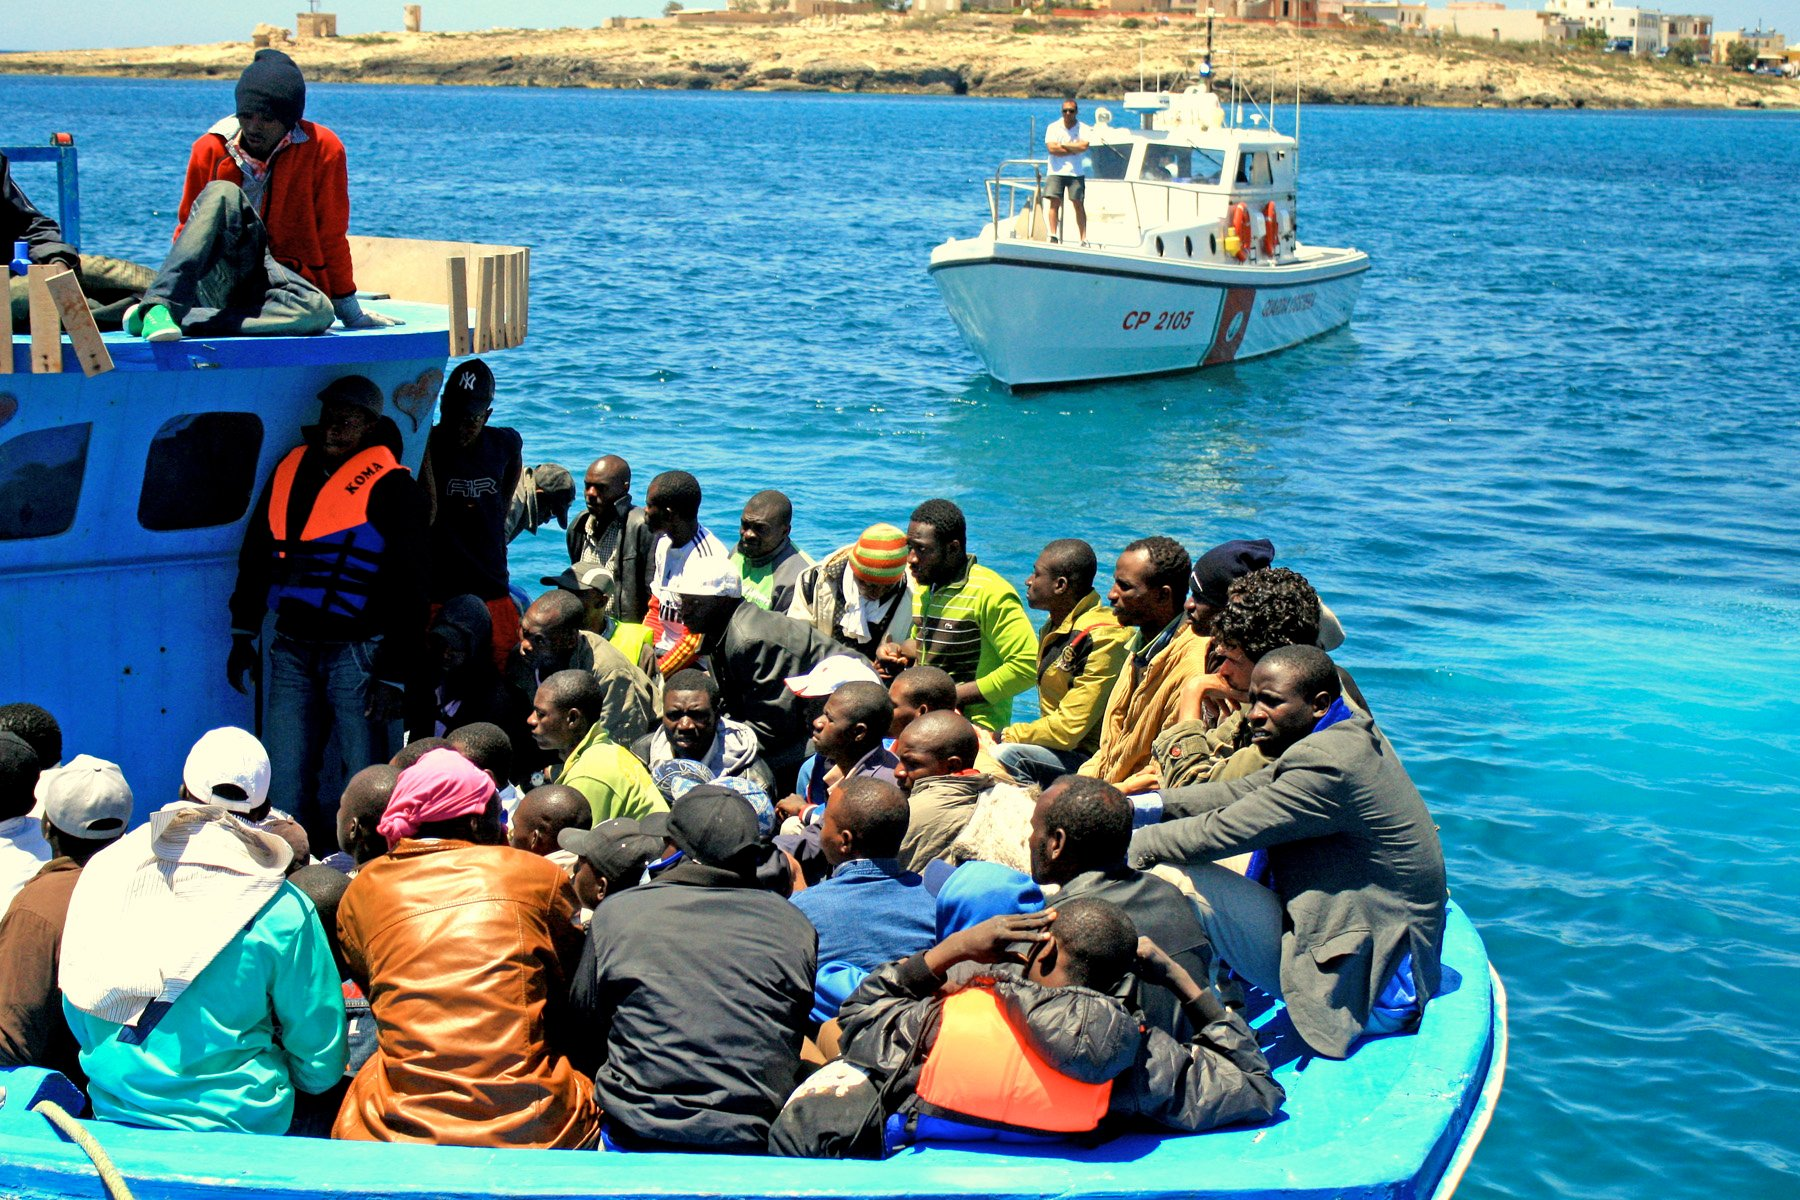 A boat carrying sub-Saharan African migrant workers arrives in Lampedusa from Tripoli